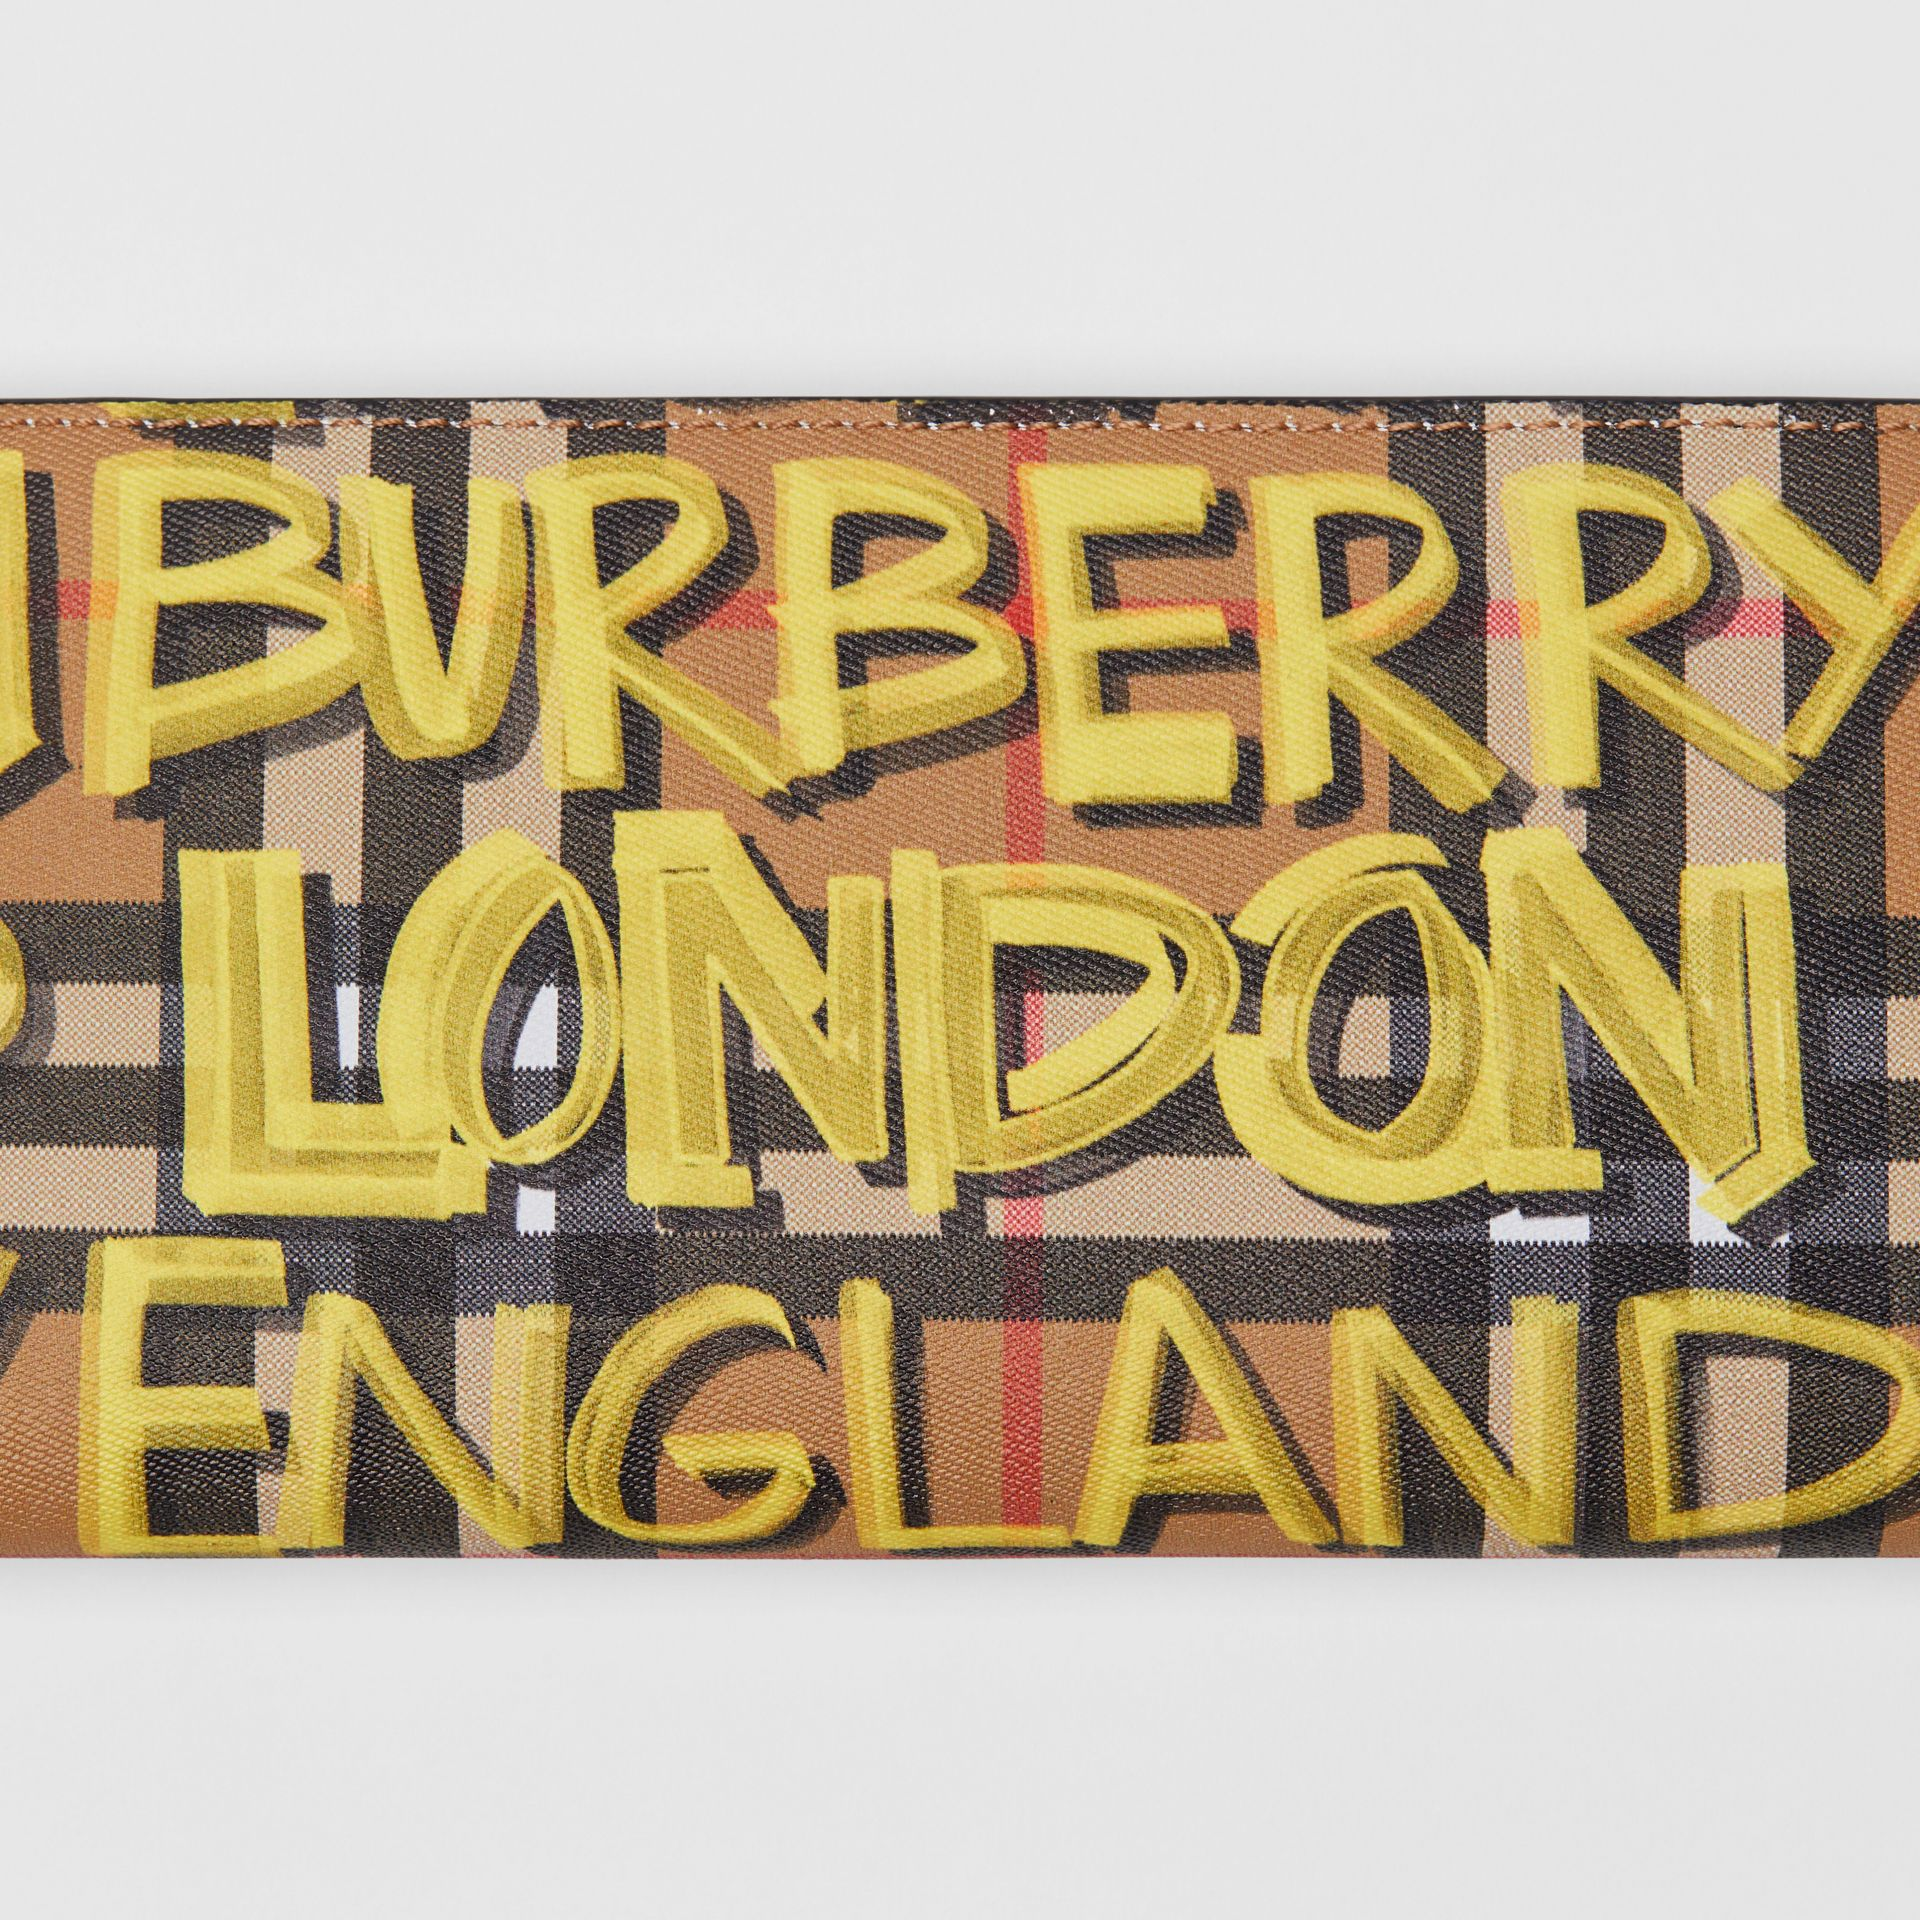 Graffiti Print Vintage Check Leather Continental Wallet in Multicolour - Men | Burberry - gallery image 1